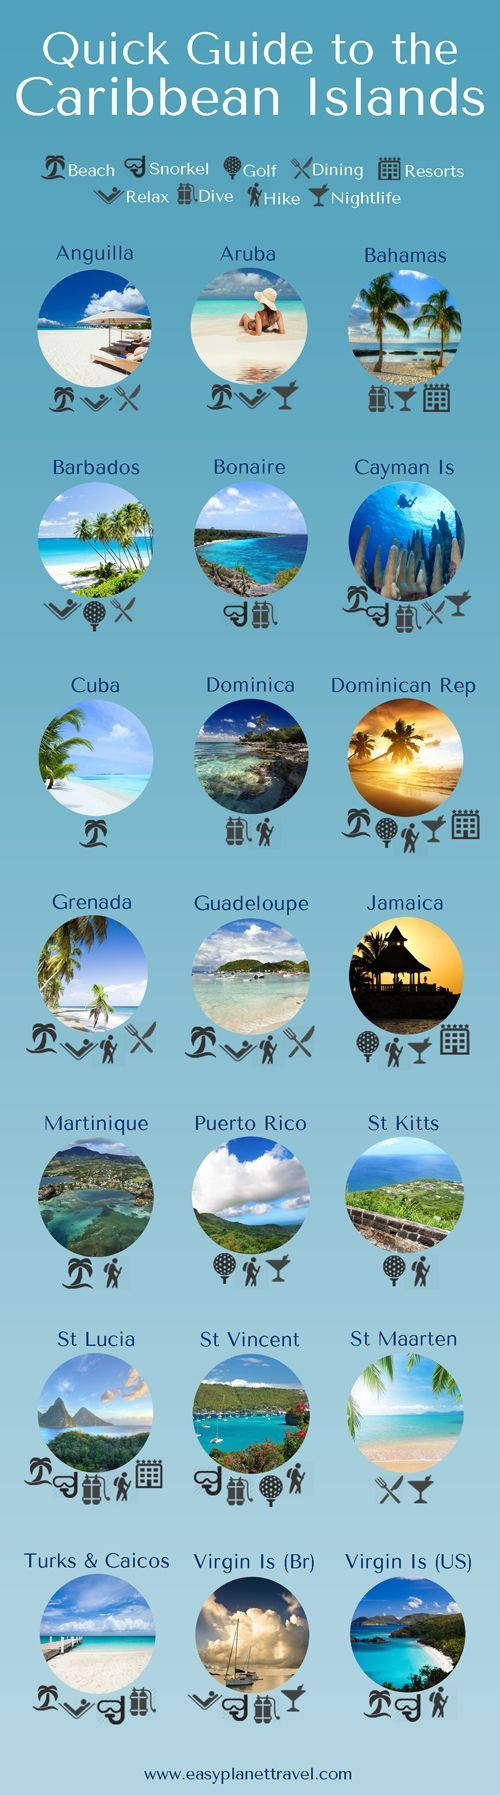 25 best ideas about caribbean islands destinations on for Best honeymoon spots in the caribbean